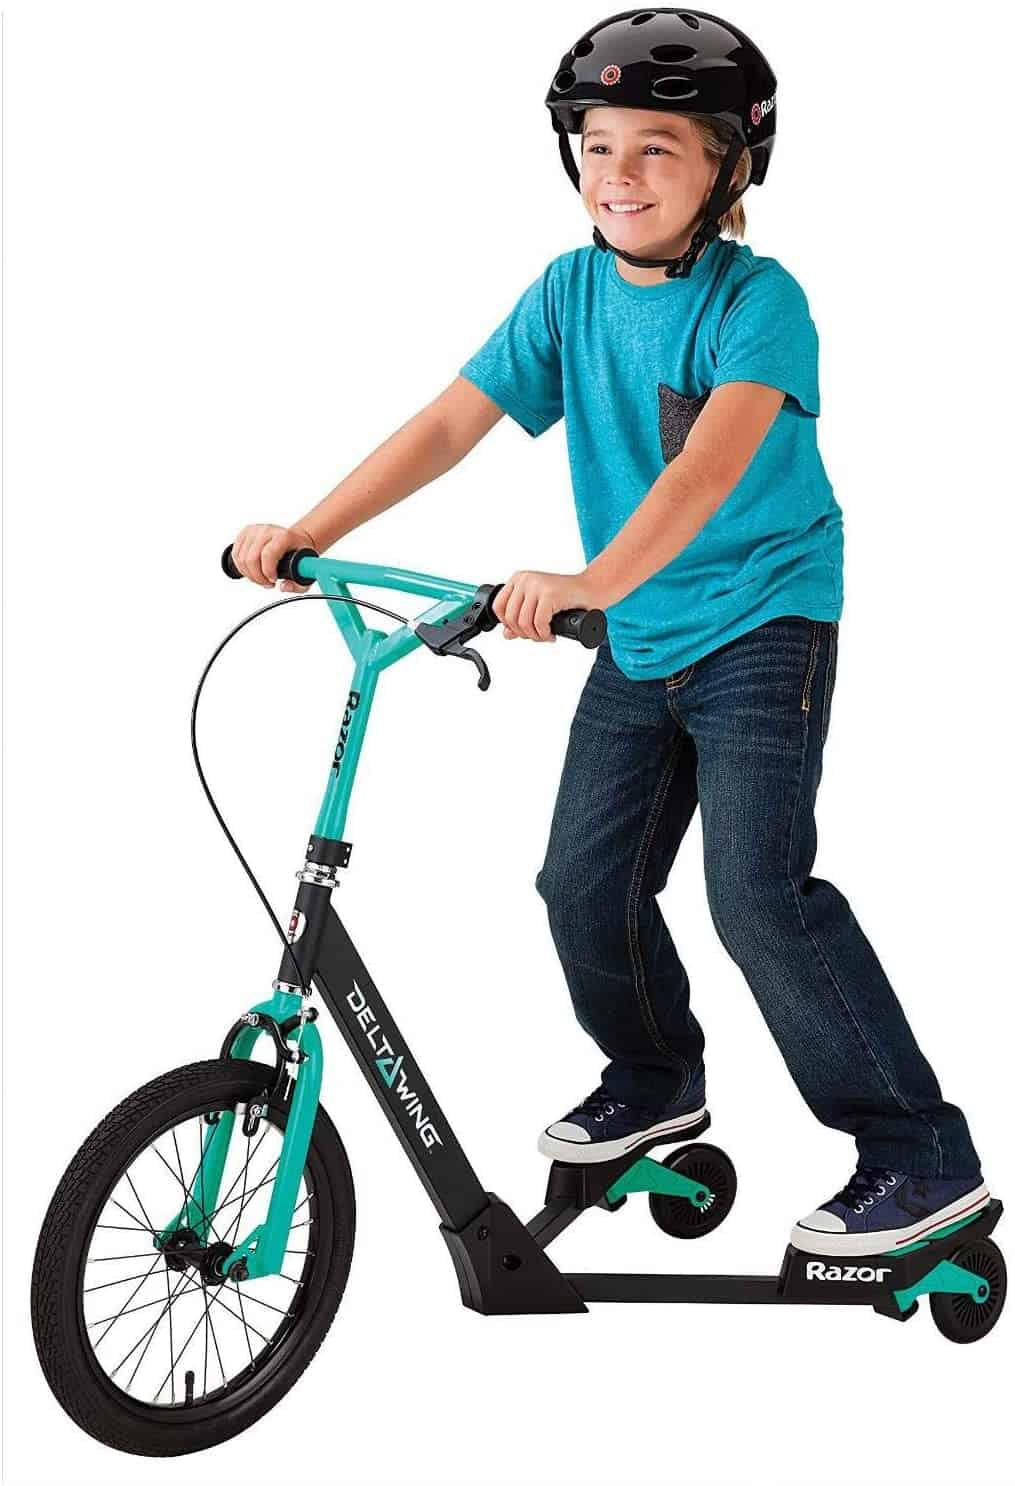 Best kids scooter for 6 year old child- Razor DeltaWing Scooter